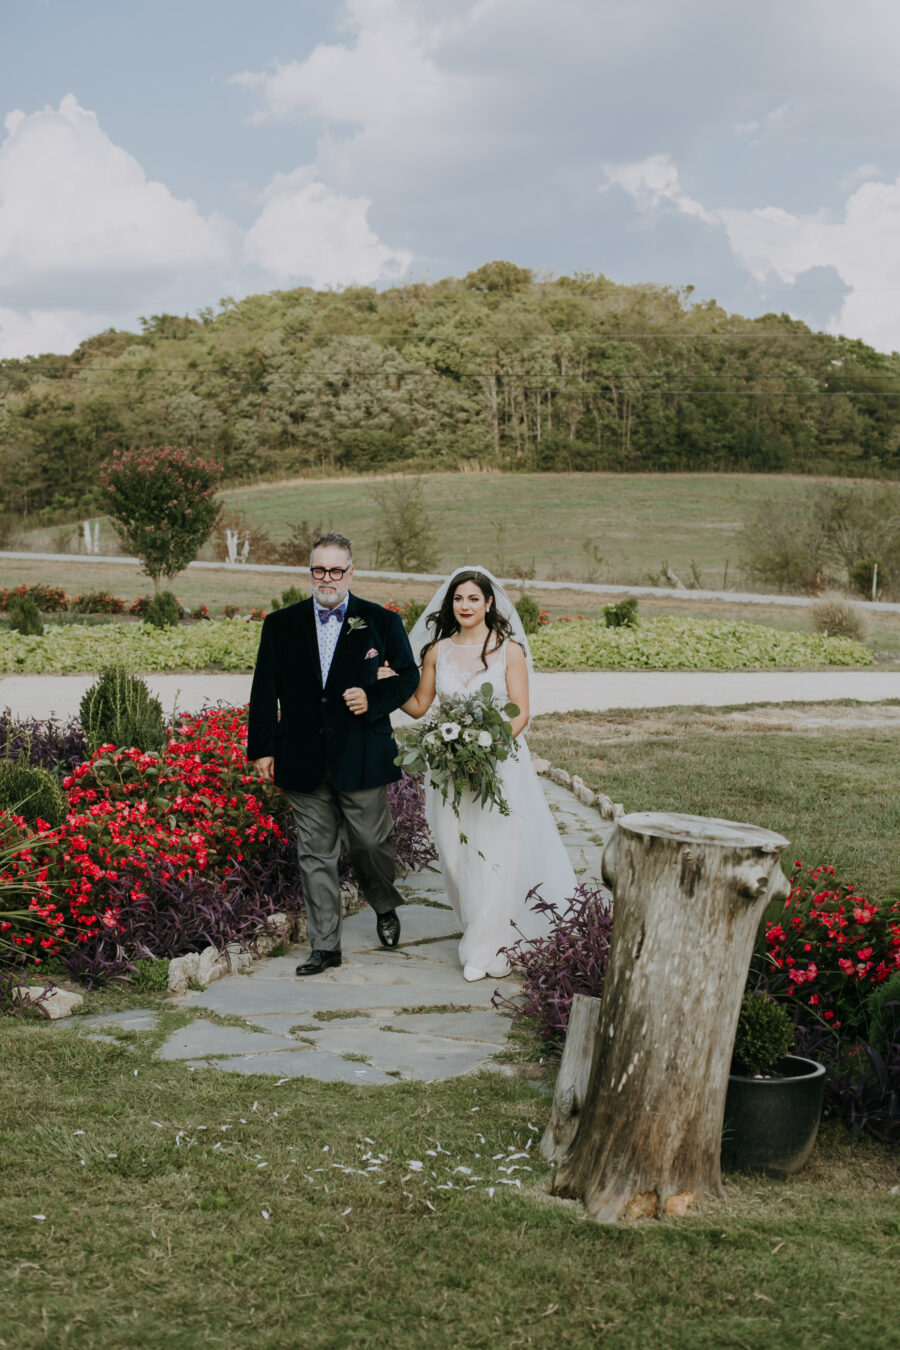 Nashville Wedding with Beautiful Views by Teale Photography featured on Nashville Bride Guide